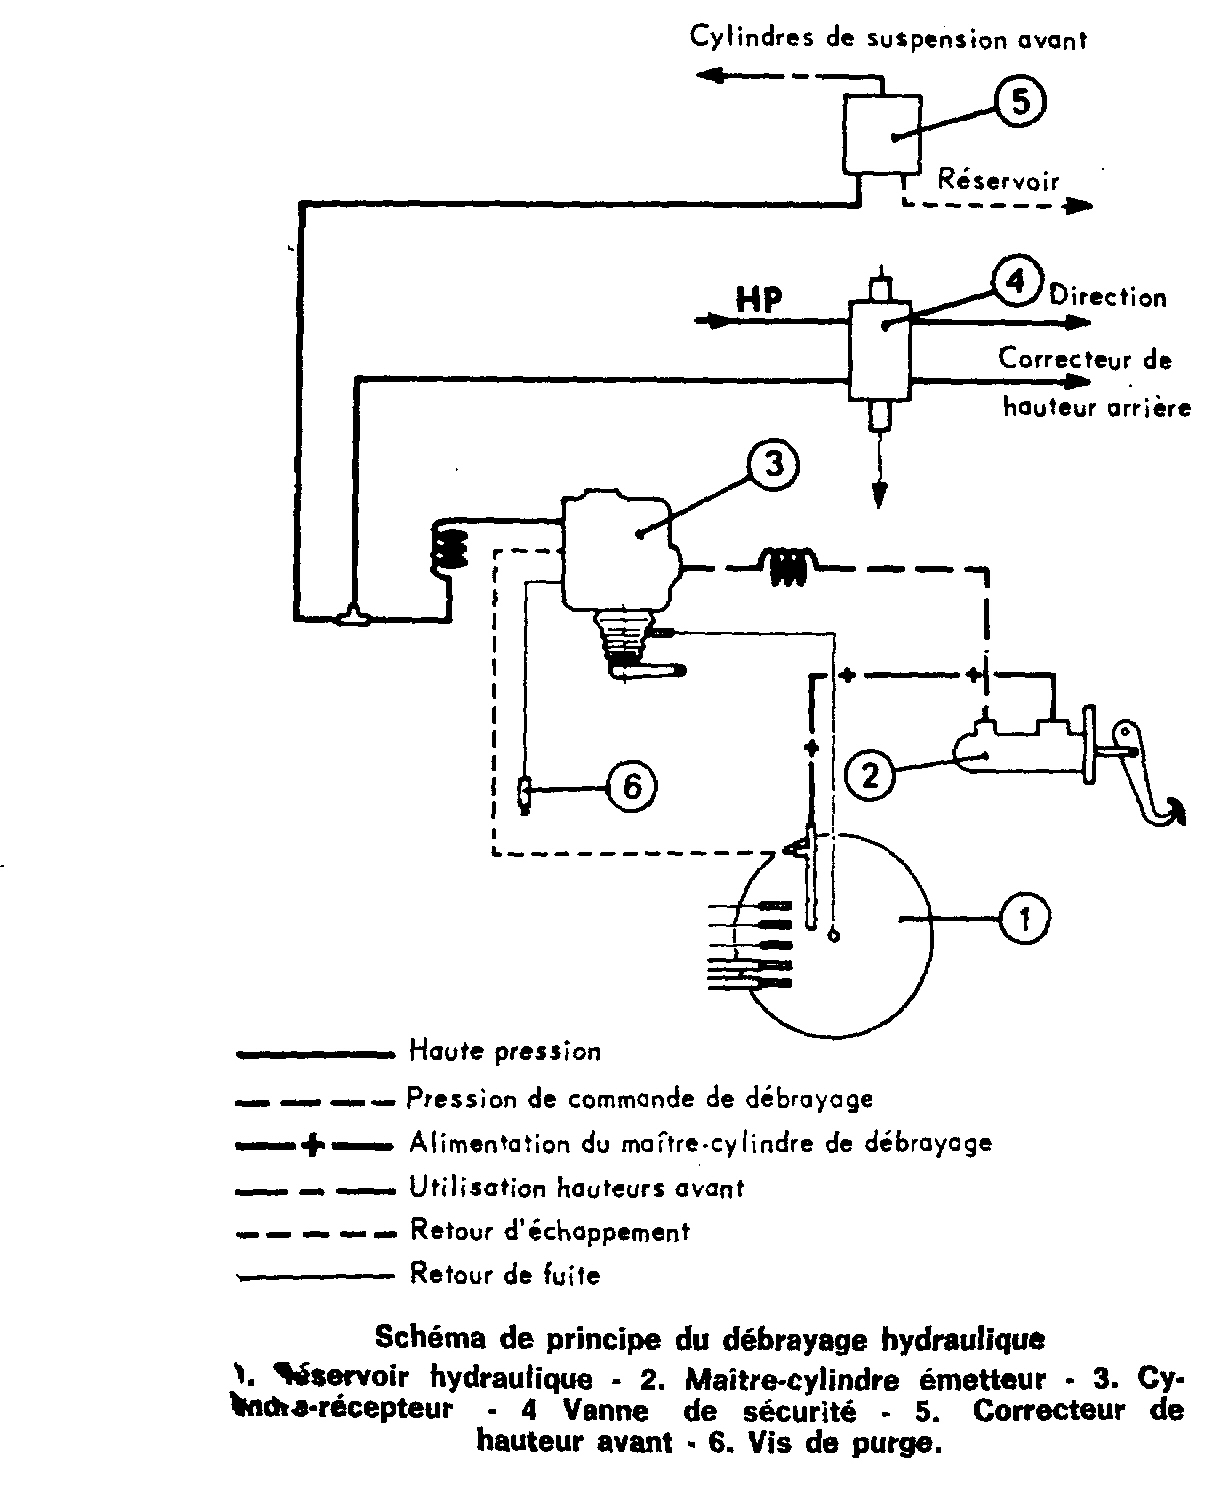 hydraulic clutch system diagram  hydraulic  free engine